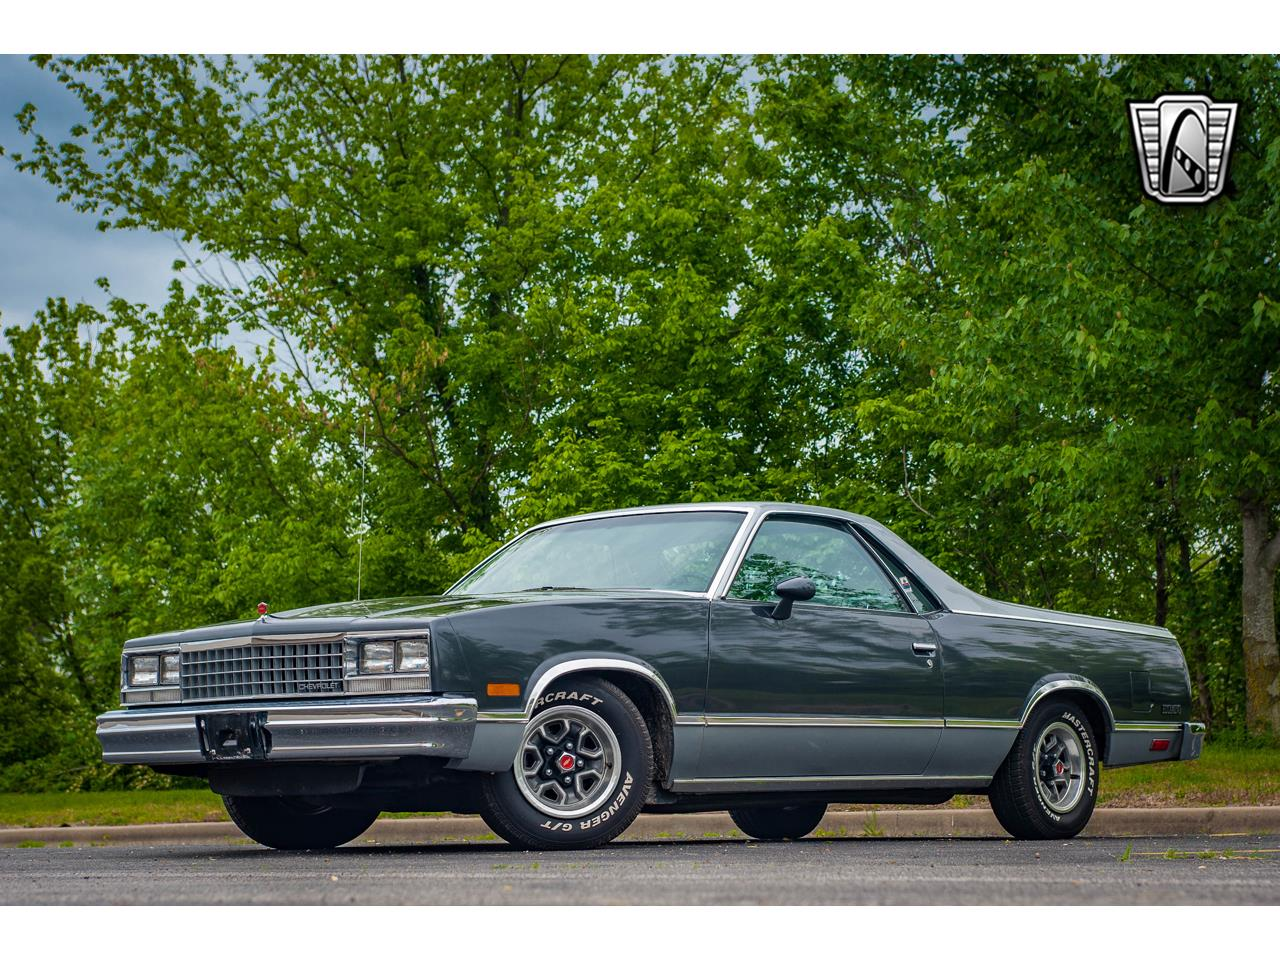 Large Picture of 1982 Chevrolet El Camino - $13,000.00 - QB9A